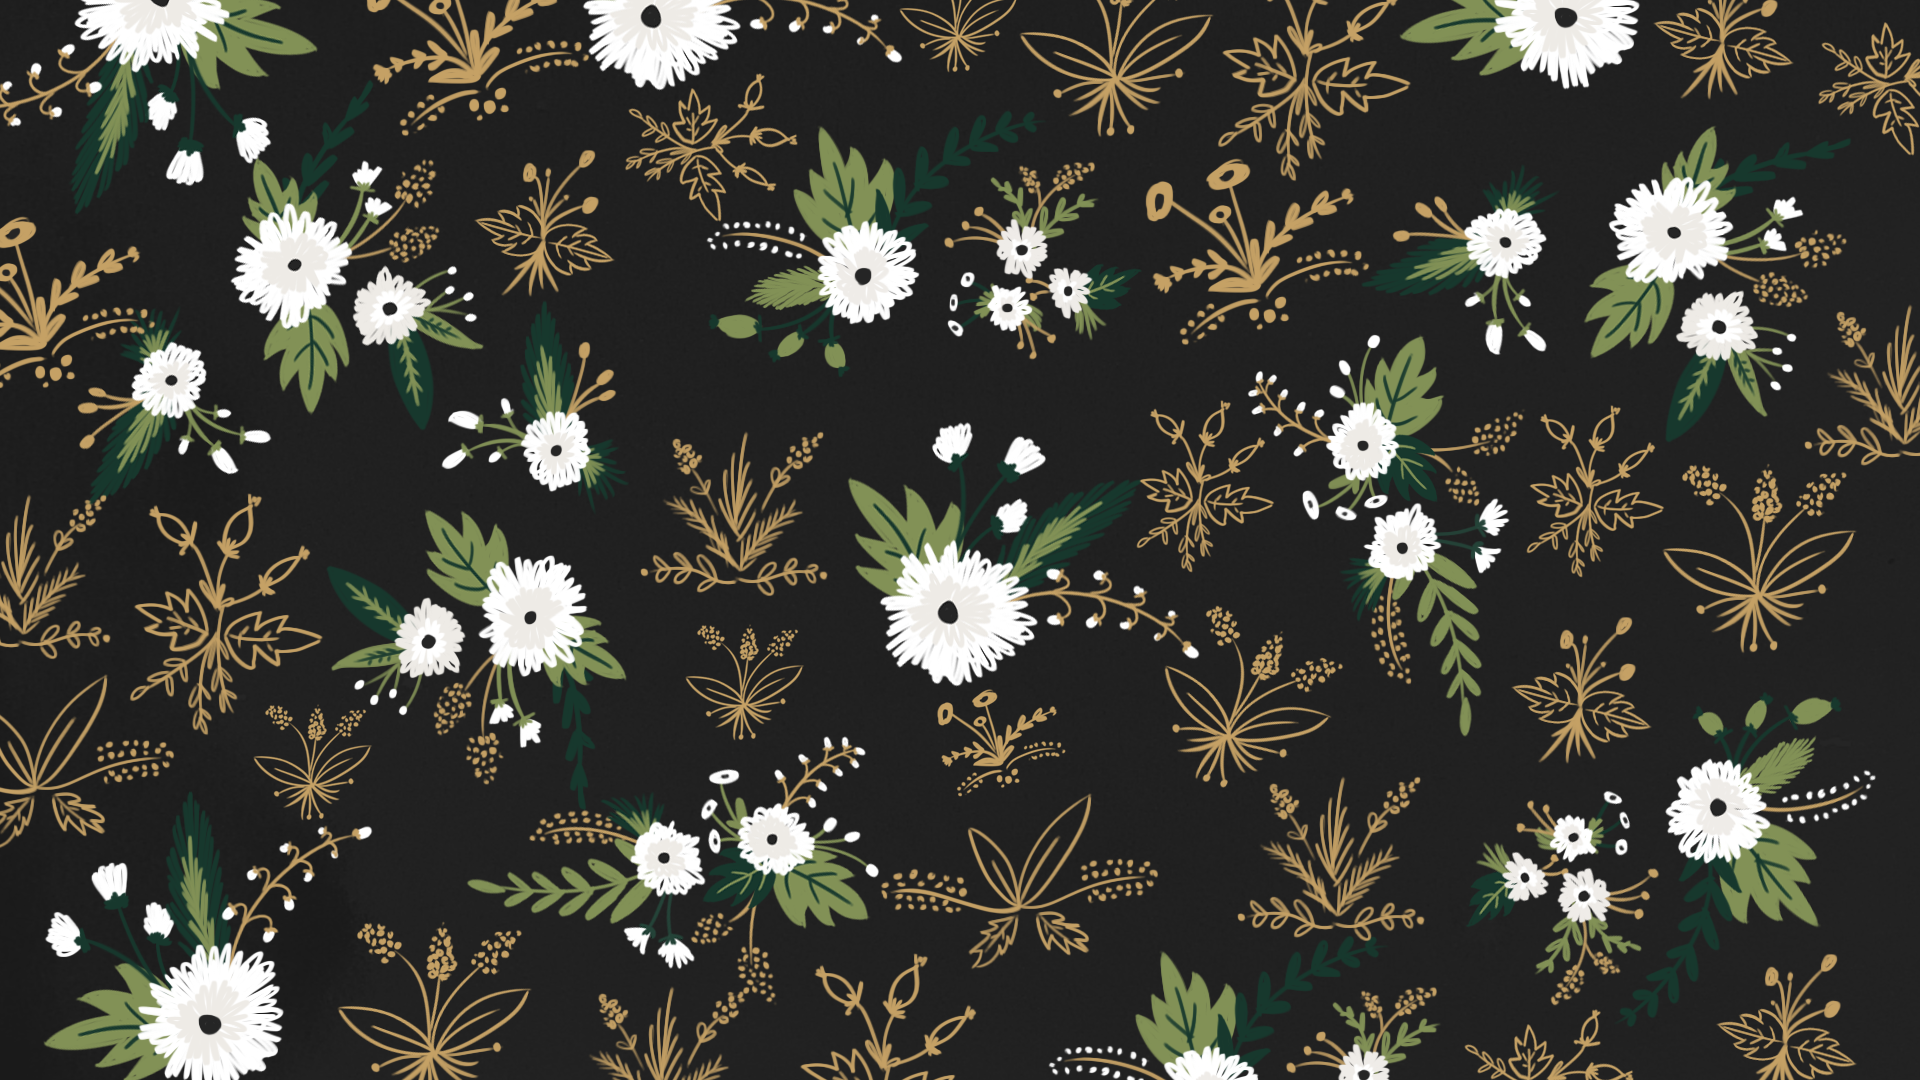 desktop positive pattern by cocorie d85k113 1920a—1080 for when i need a new background pinterest wallpaper floral wallpaper iphone and flower